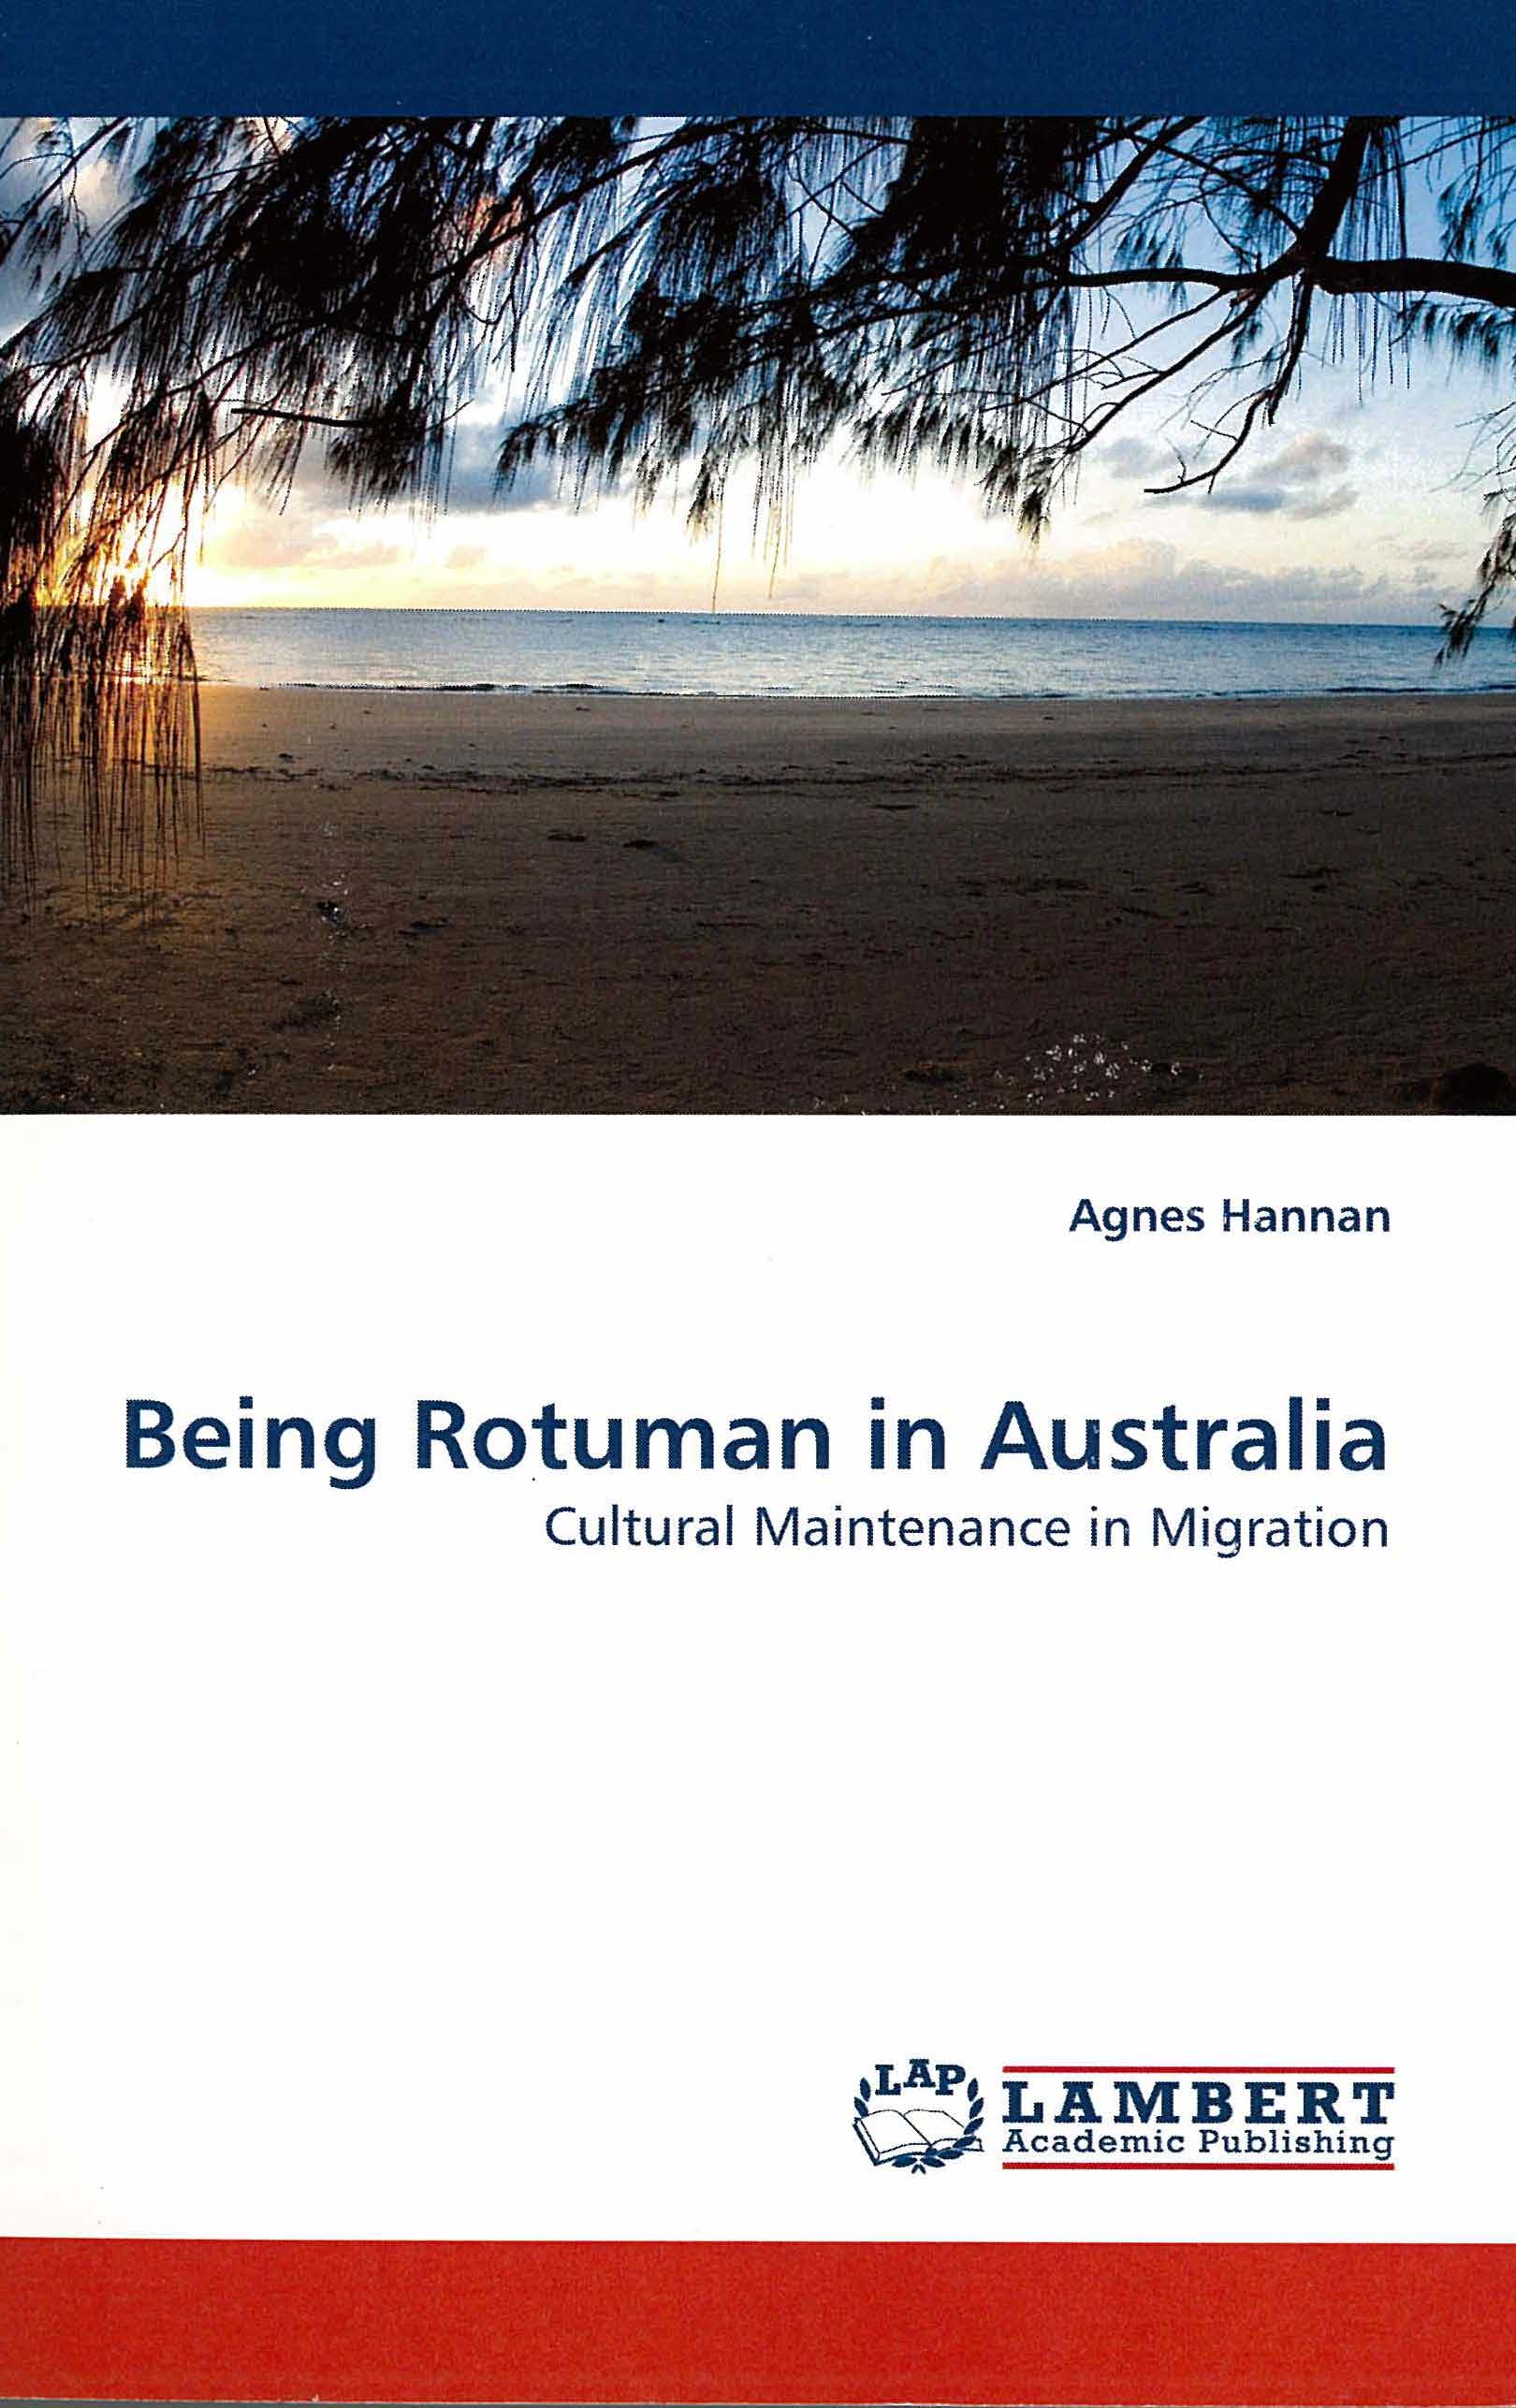 Being Rotuman in Australia: cultural maintenance in migration